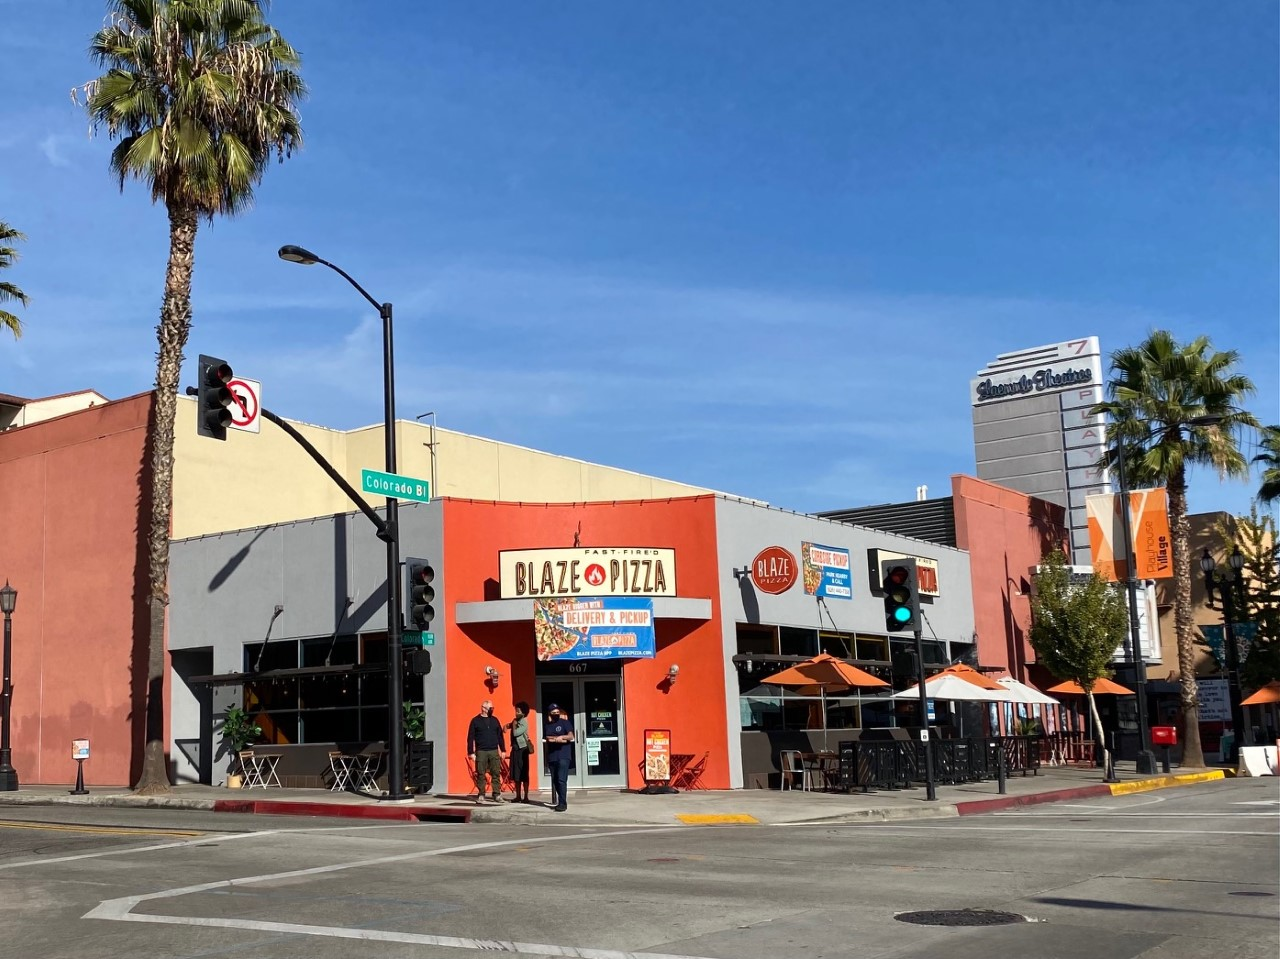 Laemmle Theatres Executes Sale-Leaseback Strategy to Generate Liquidity During COVID-19 Pandemic